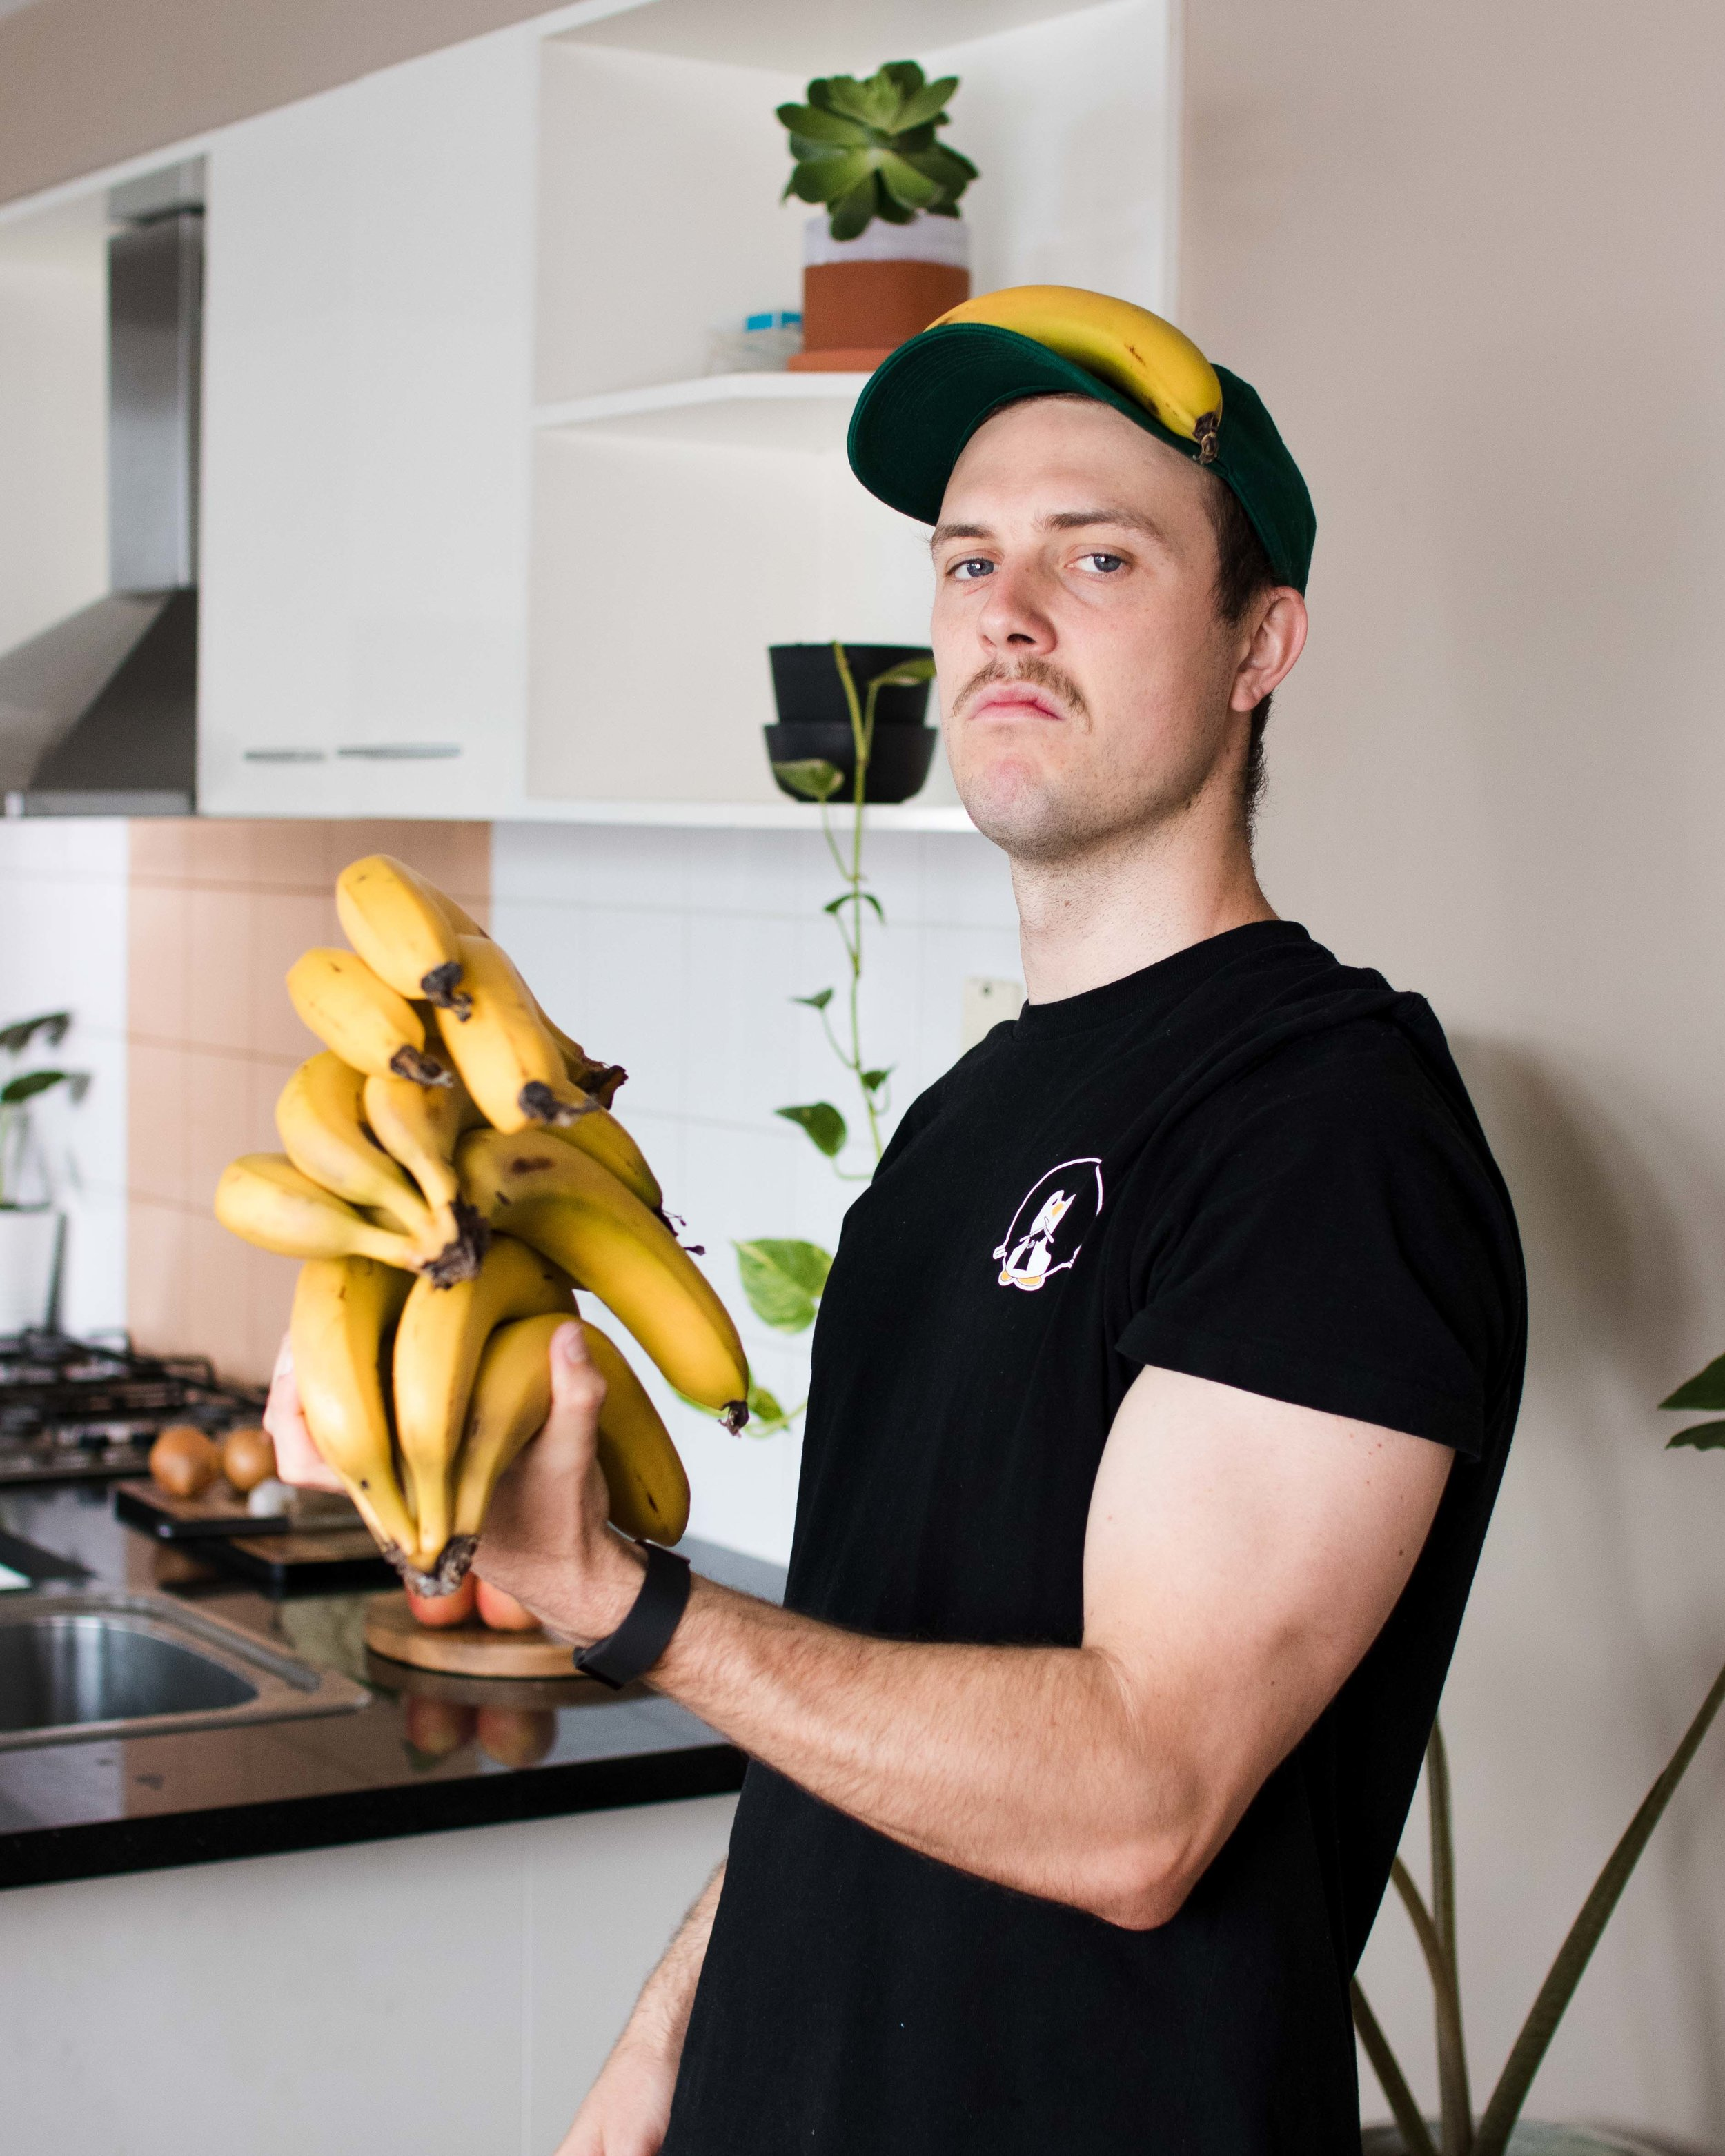 """""""I could hardly lift a single banana… now i can rep bunches all day"""" - Jacob."""